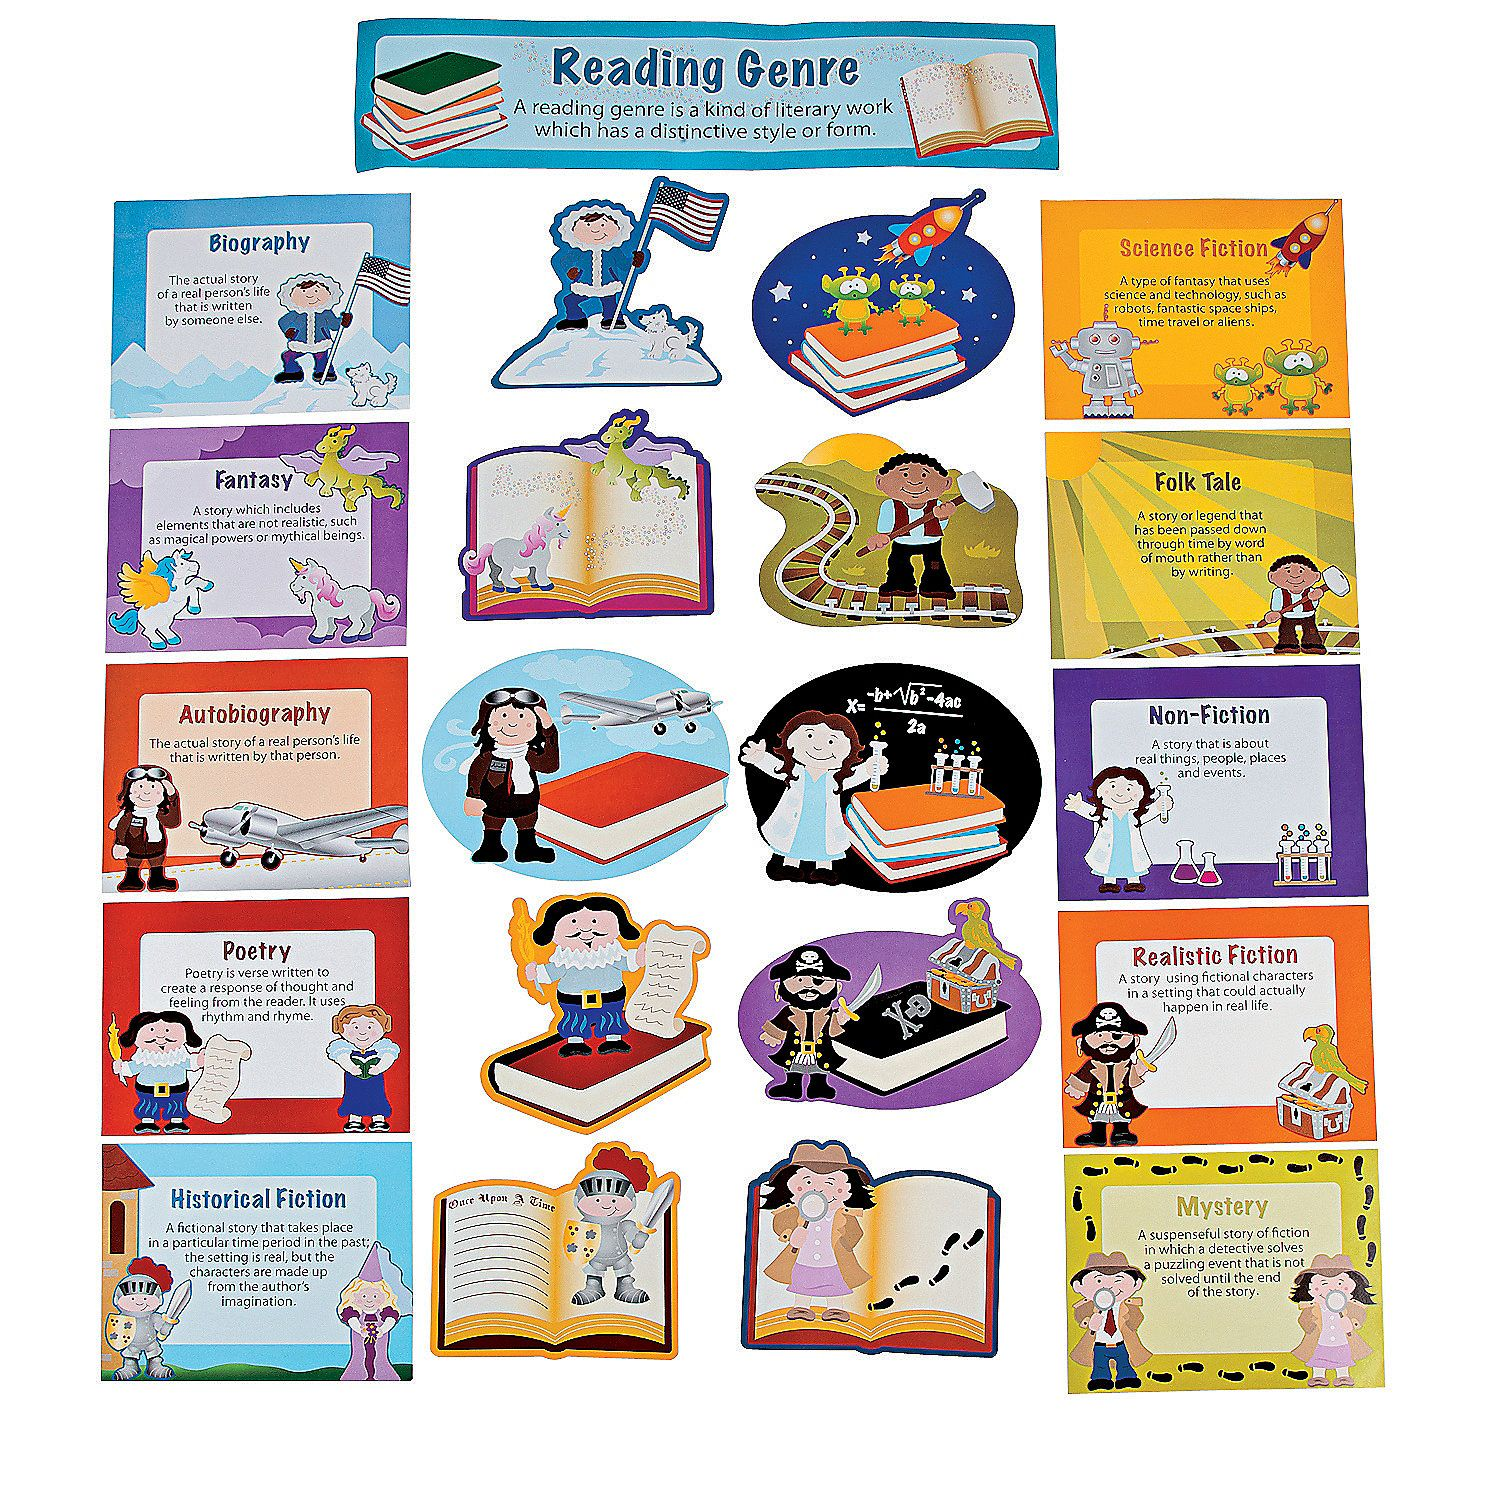 21 Reading Genre Posters Including Definitions Of